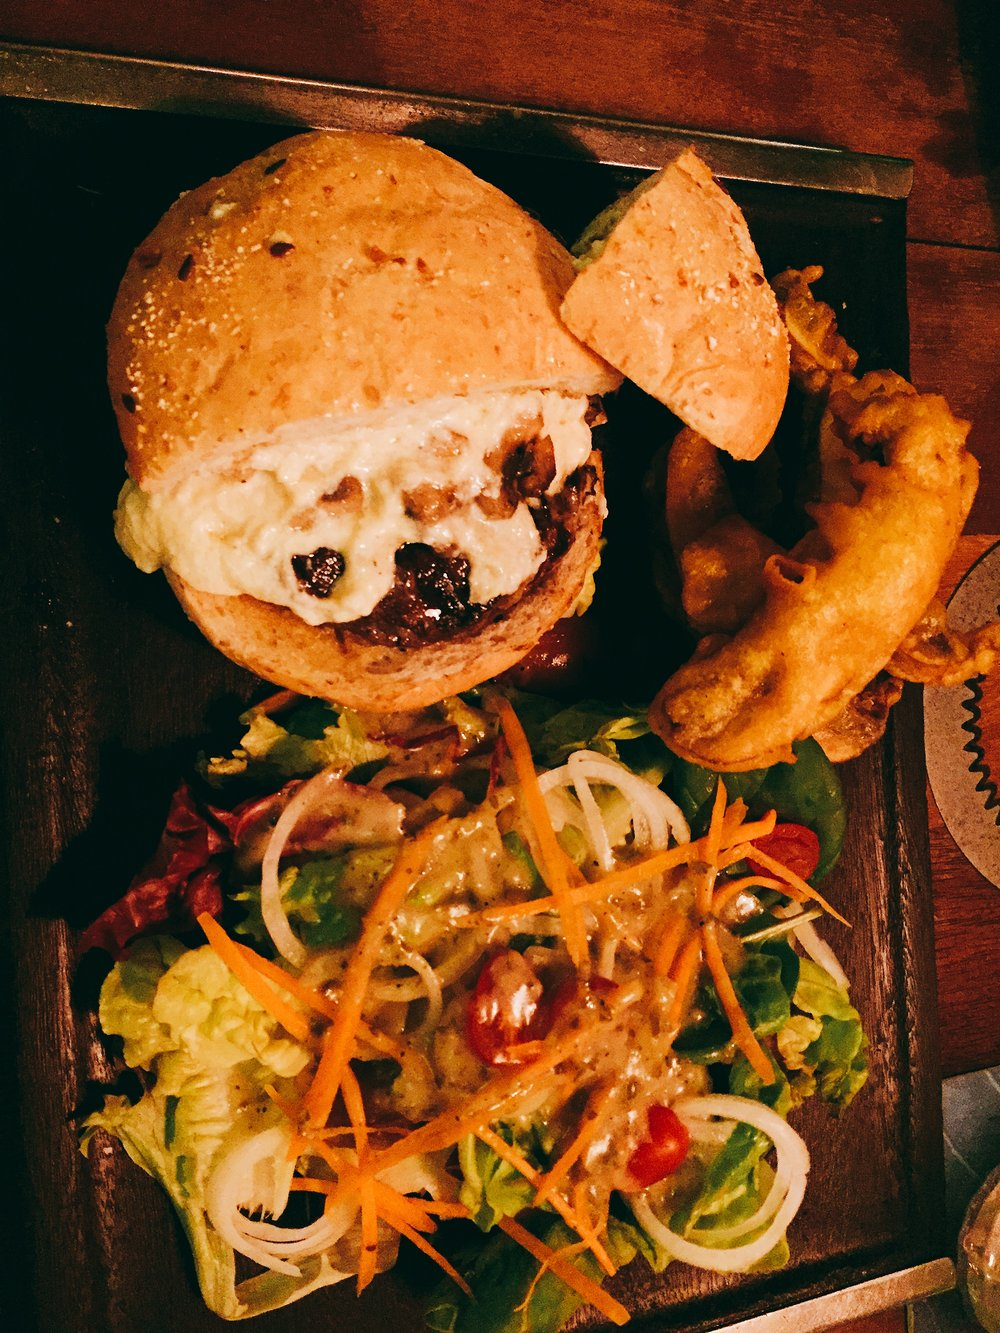 Daily Grind's Japanese Yodel Burger